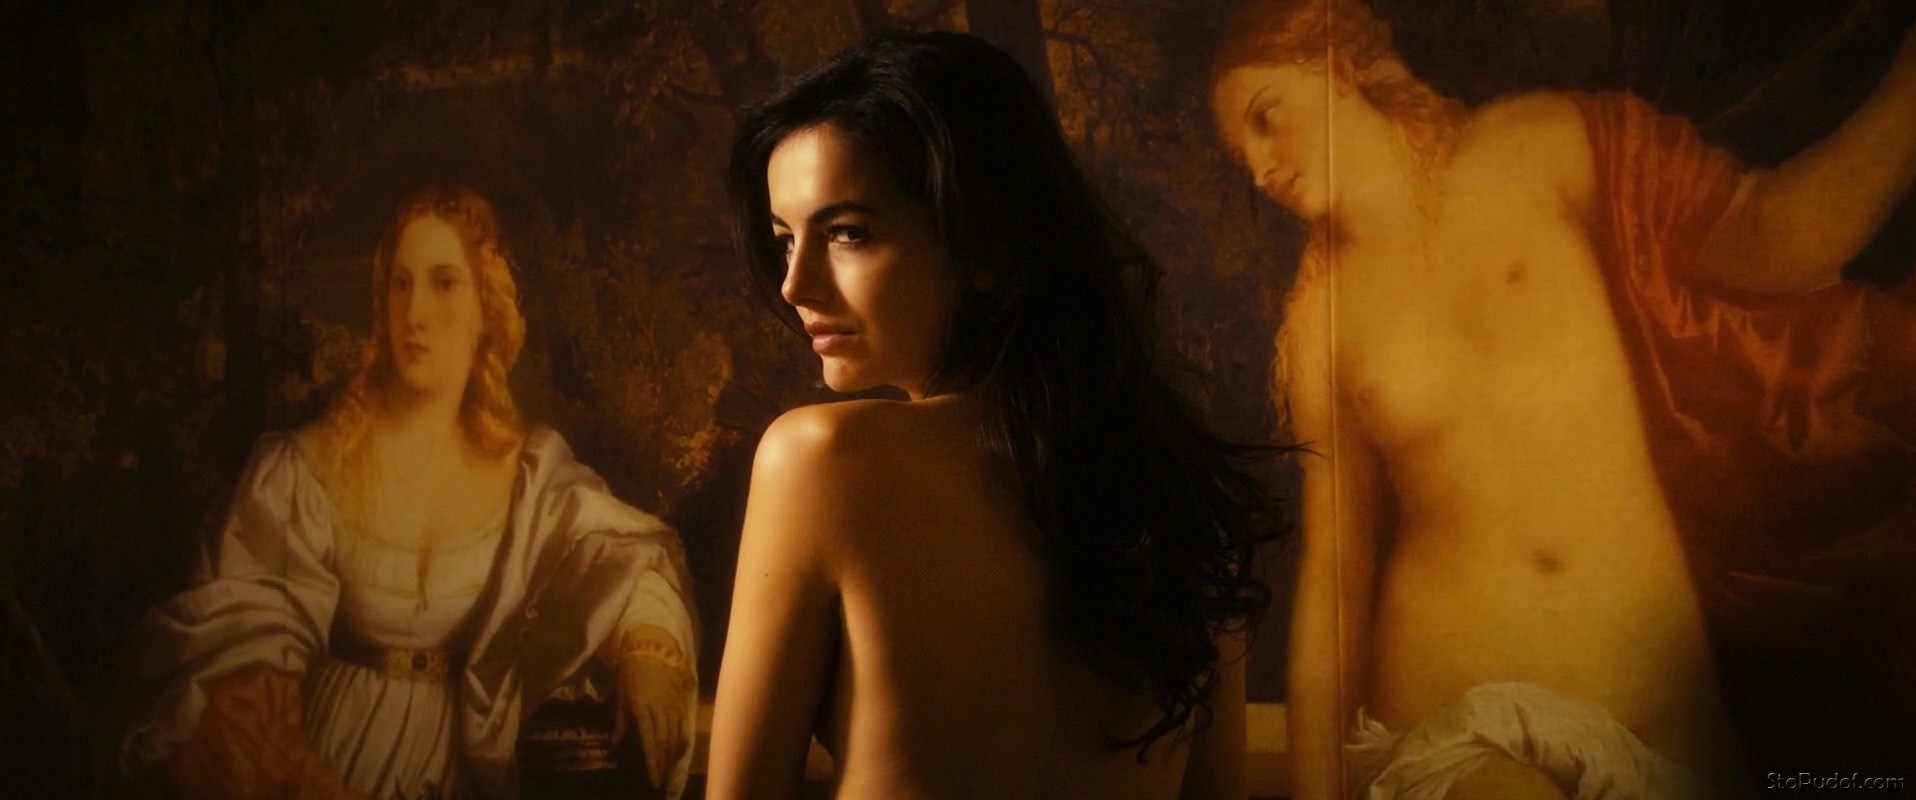 Camilla belle nude fucking with threesome pic